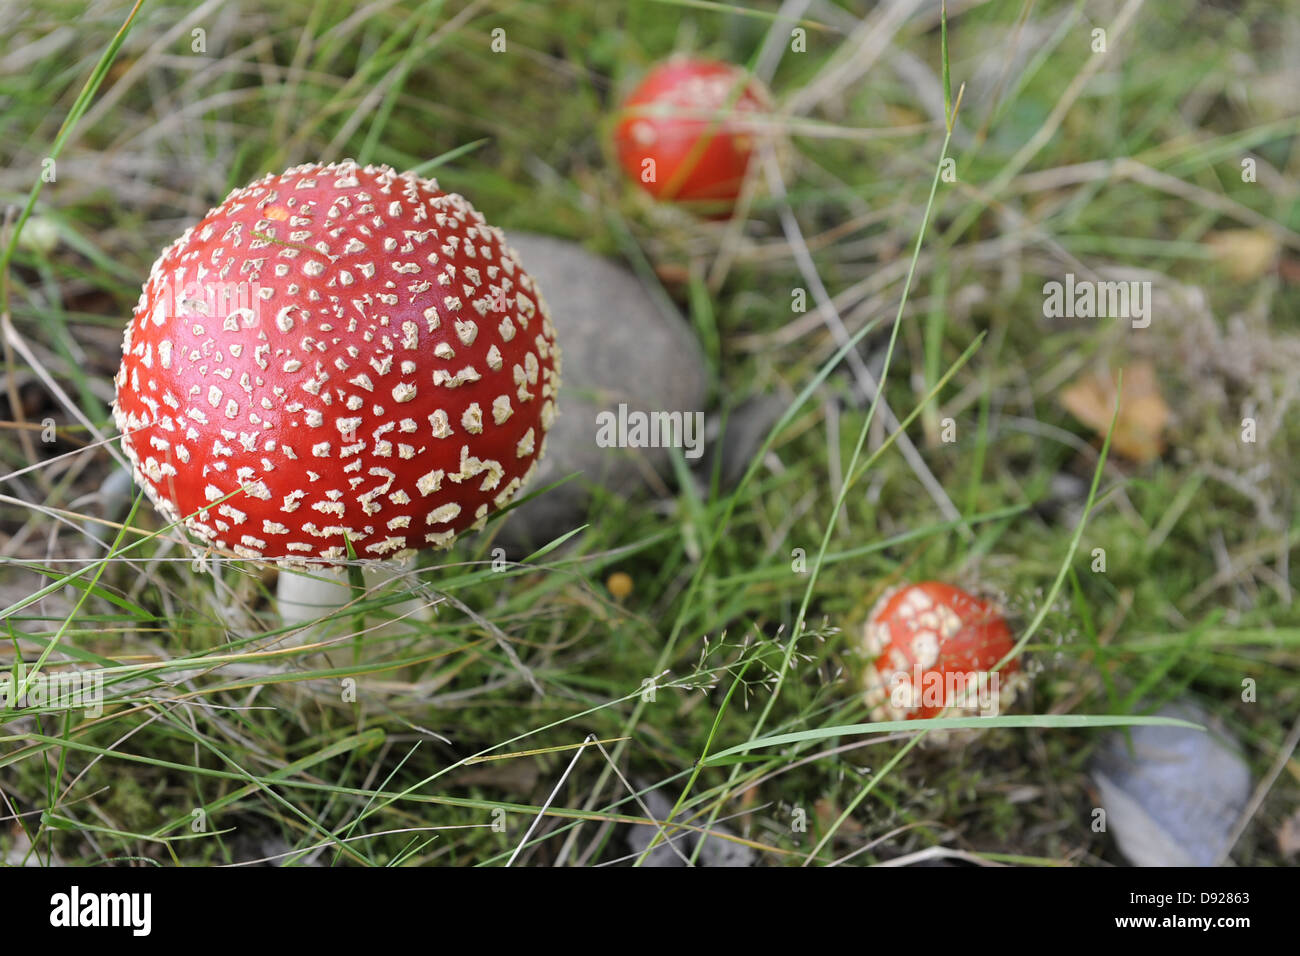 Fly Agaric, Tayside, Scotland, Great Britain - Stock Image